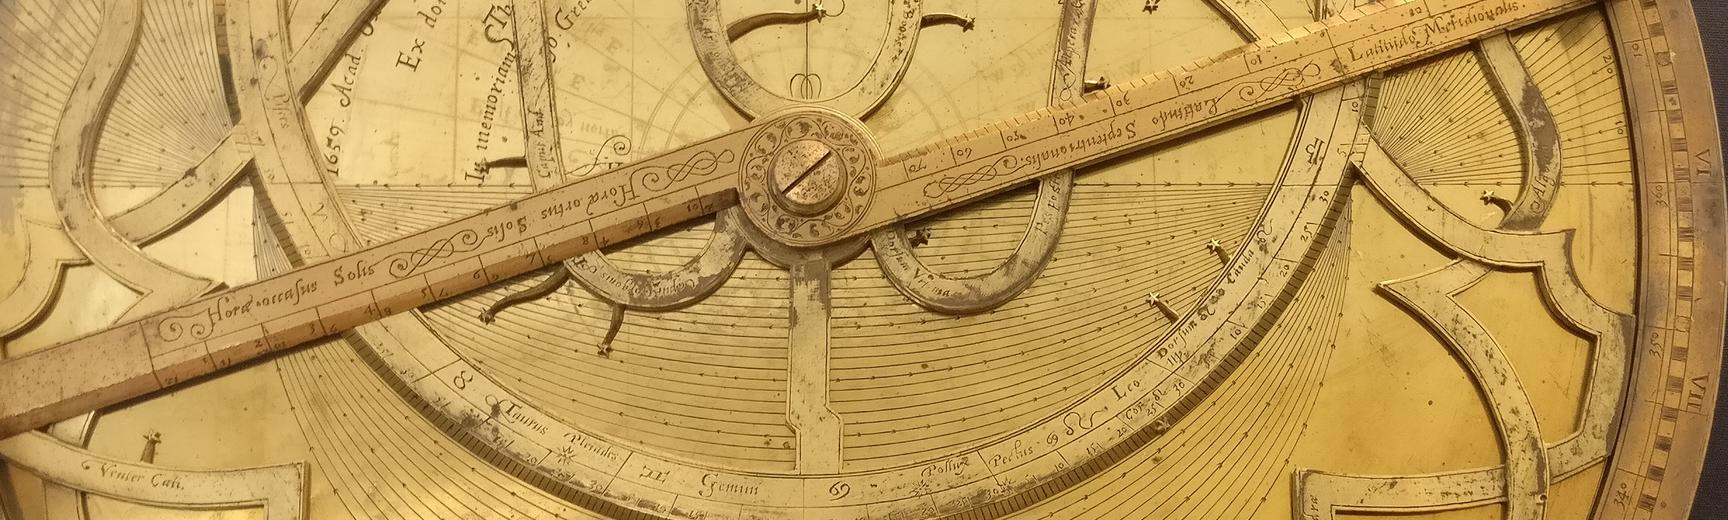 Astrolabe in History of Science Museum